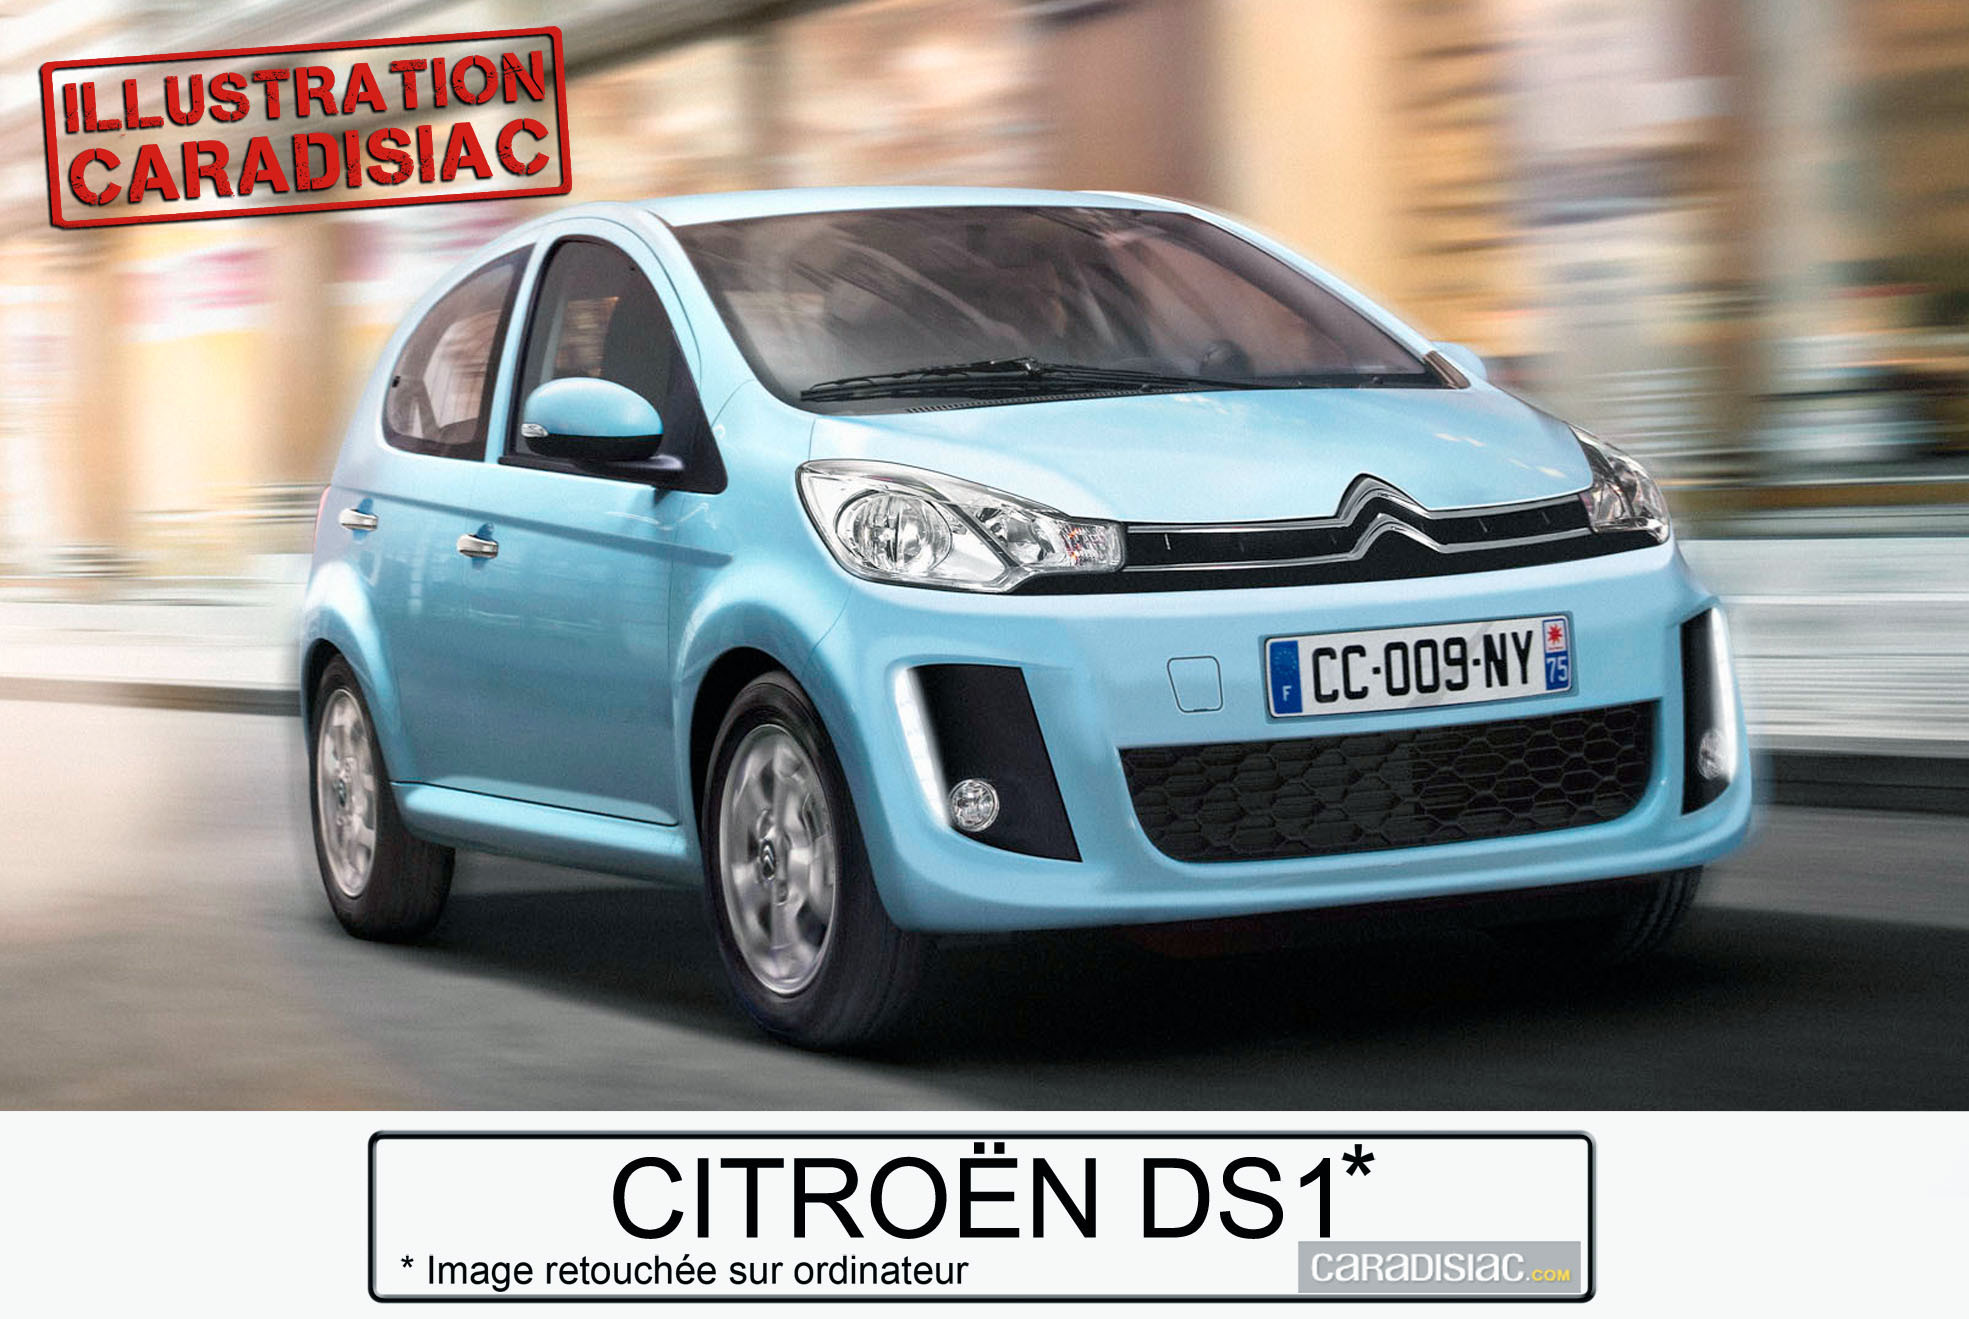 citroen c4 hatchback for sale html with Citroen Ds1 C1 2014 on 2017 Chevrolet Sonic Accessories as well Citroen Relay Fuse Box 2014 in addition Corvette C5 moreover Toyota Starlet Tuned Ep 82 1992 XWPjB7 furthermore Picture121279.